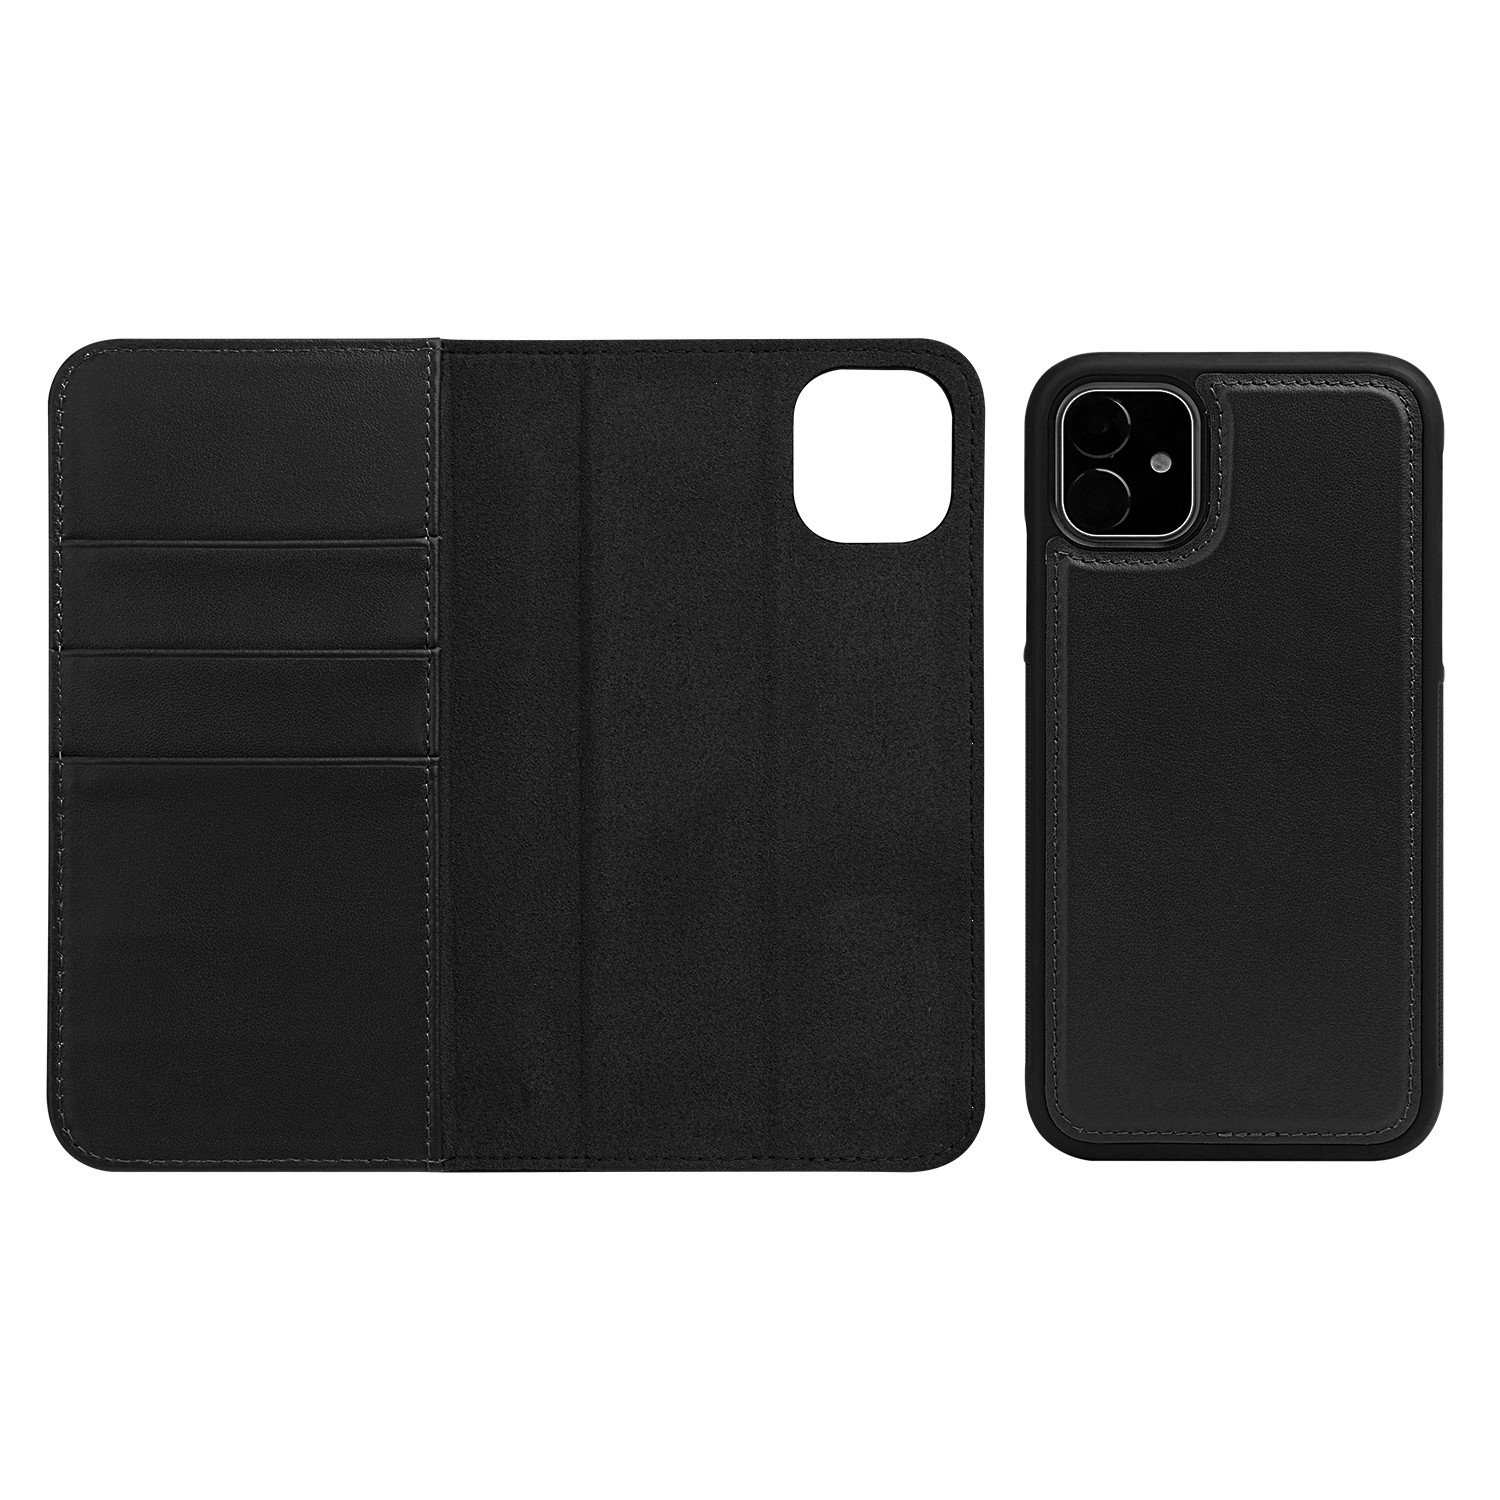 AIVI good quality mobile back cover for iPhone 11 factory price for iPhone11-8